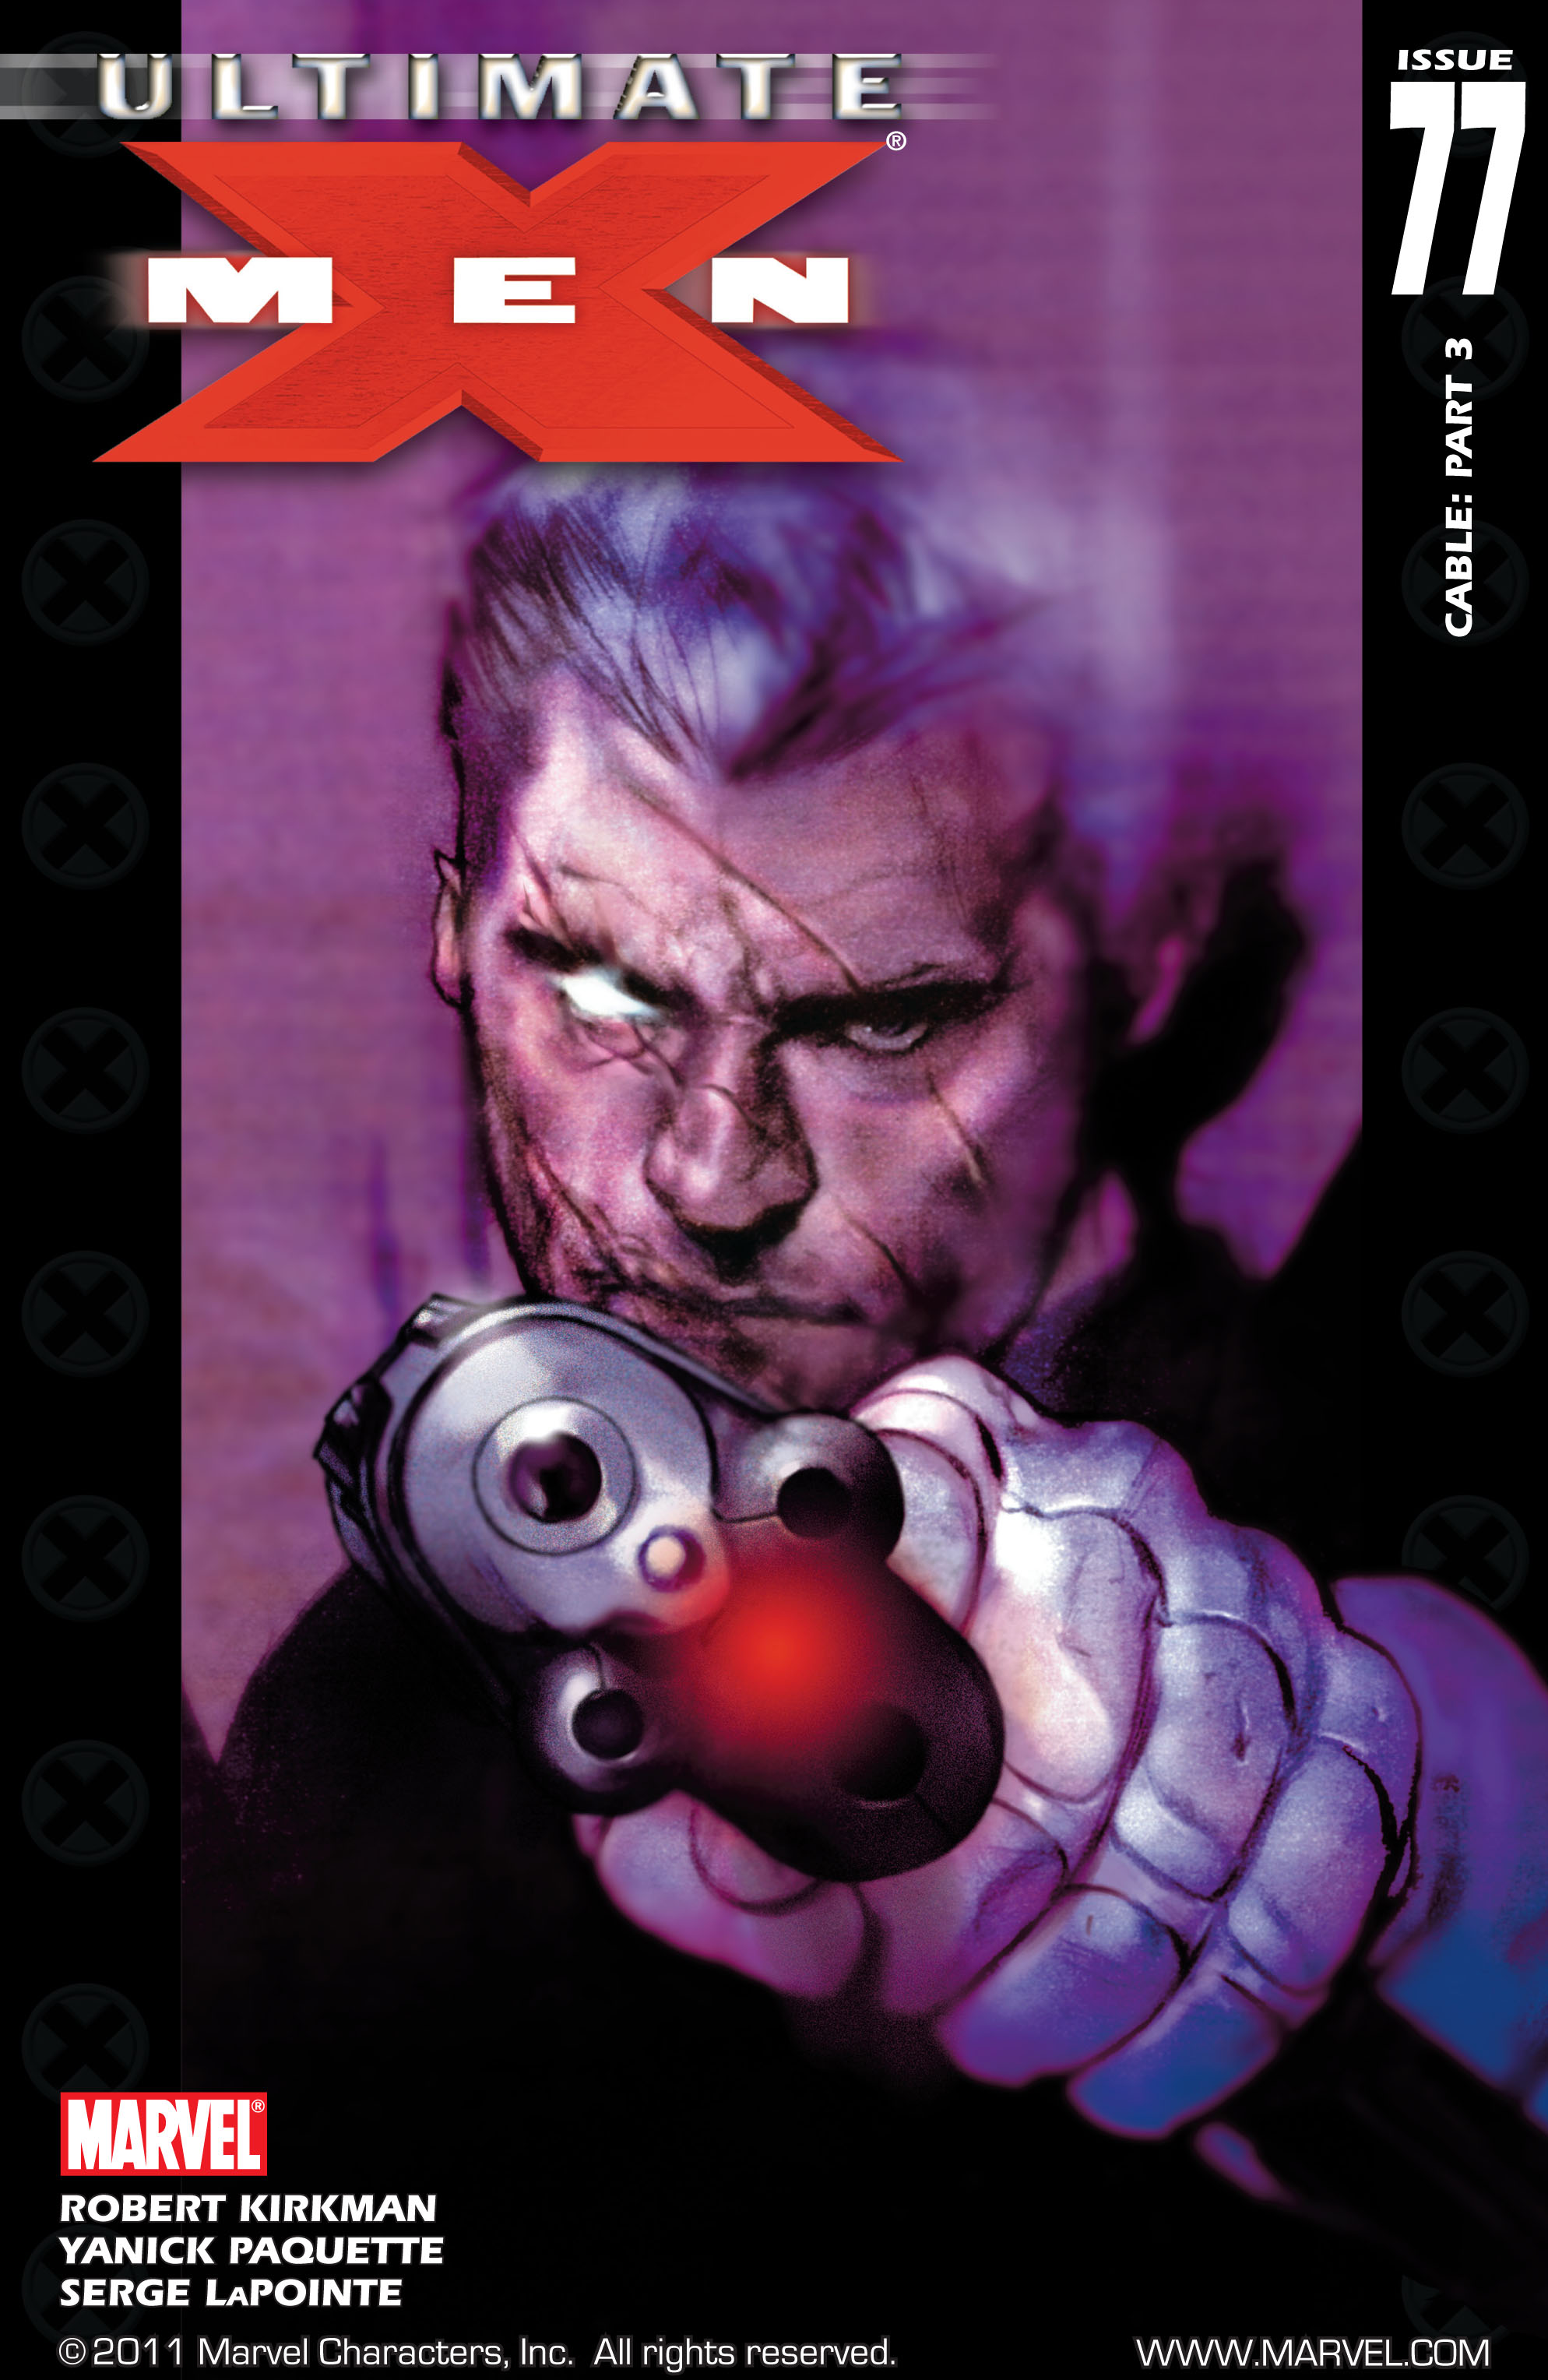 Read online Ultimate X-Men comic -  Issue #77 - 1